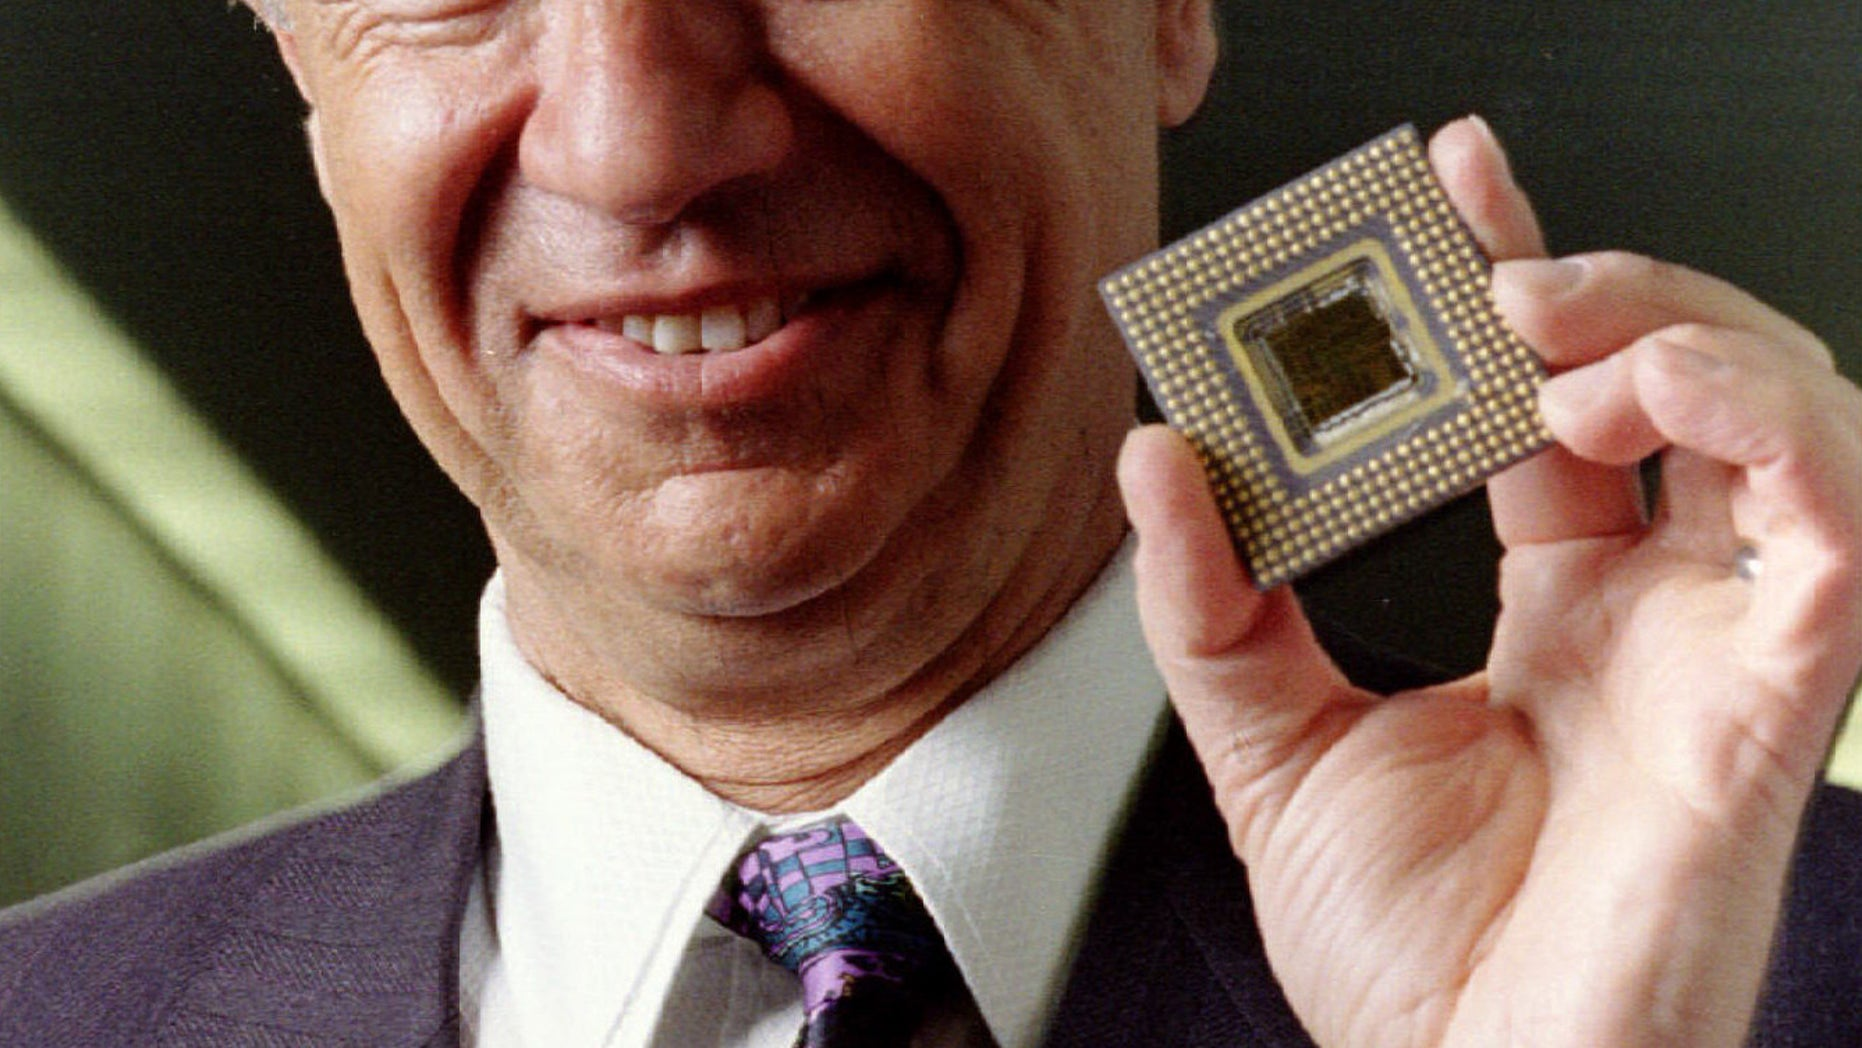 March 22, 1993: Intel Corp. President and CEO Andy Grove shows off the company's long-awaited Pentium microprocessor.